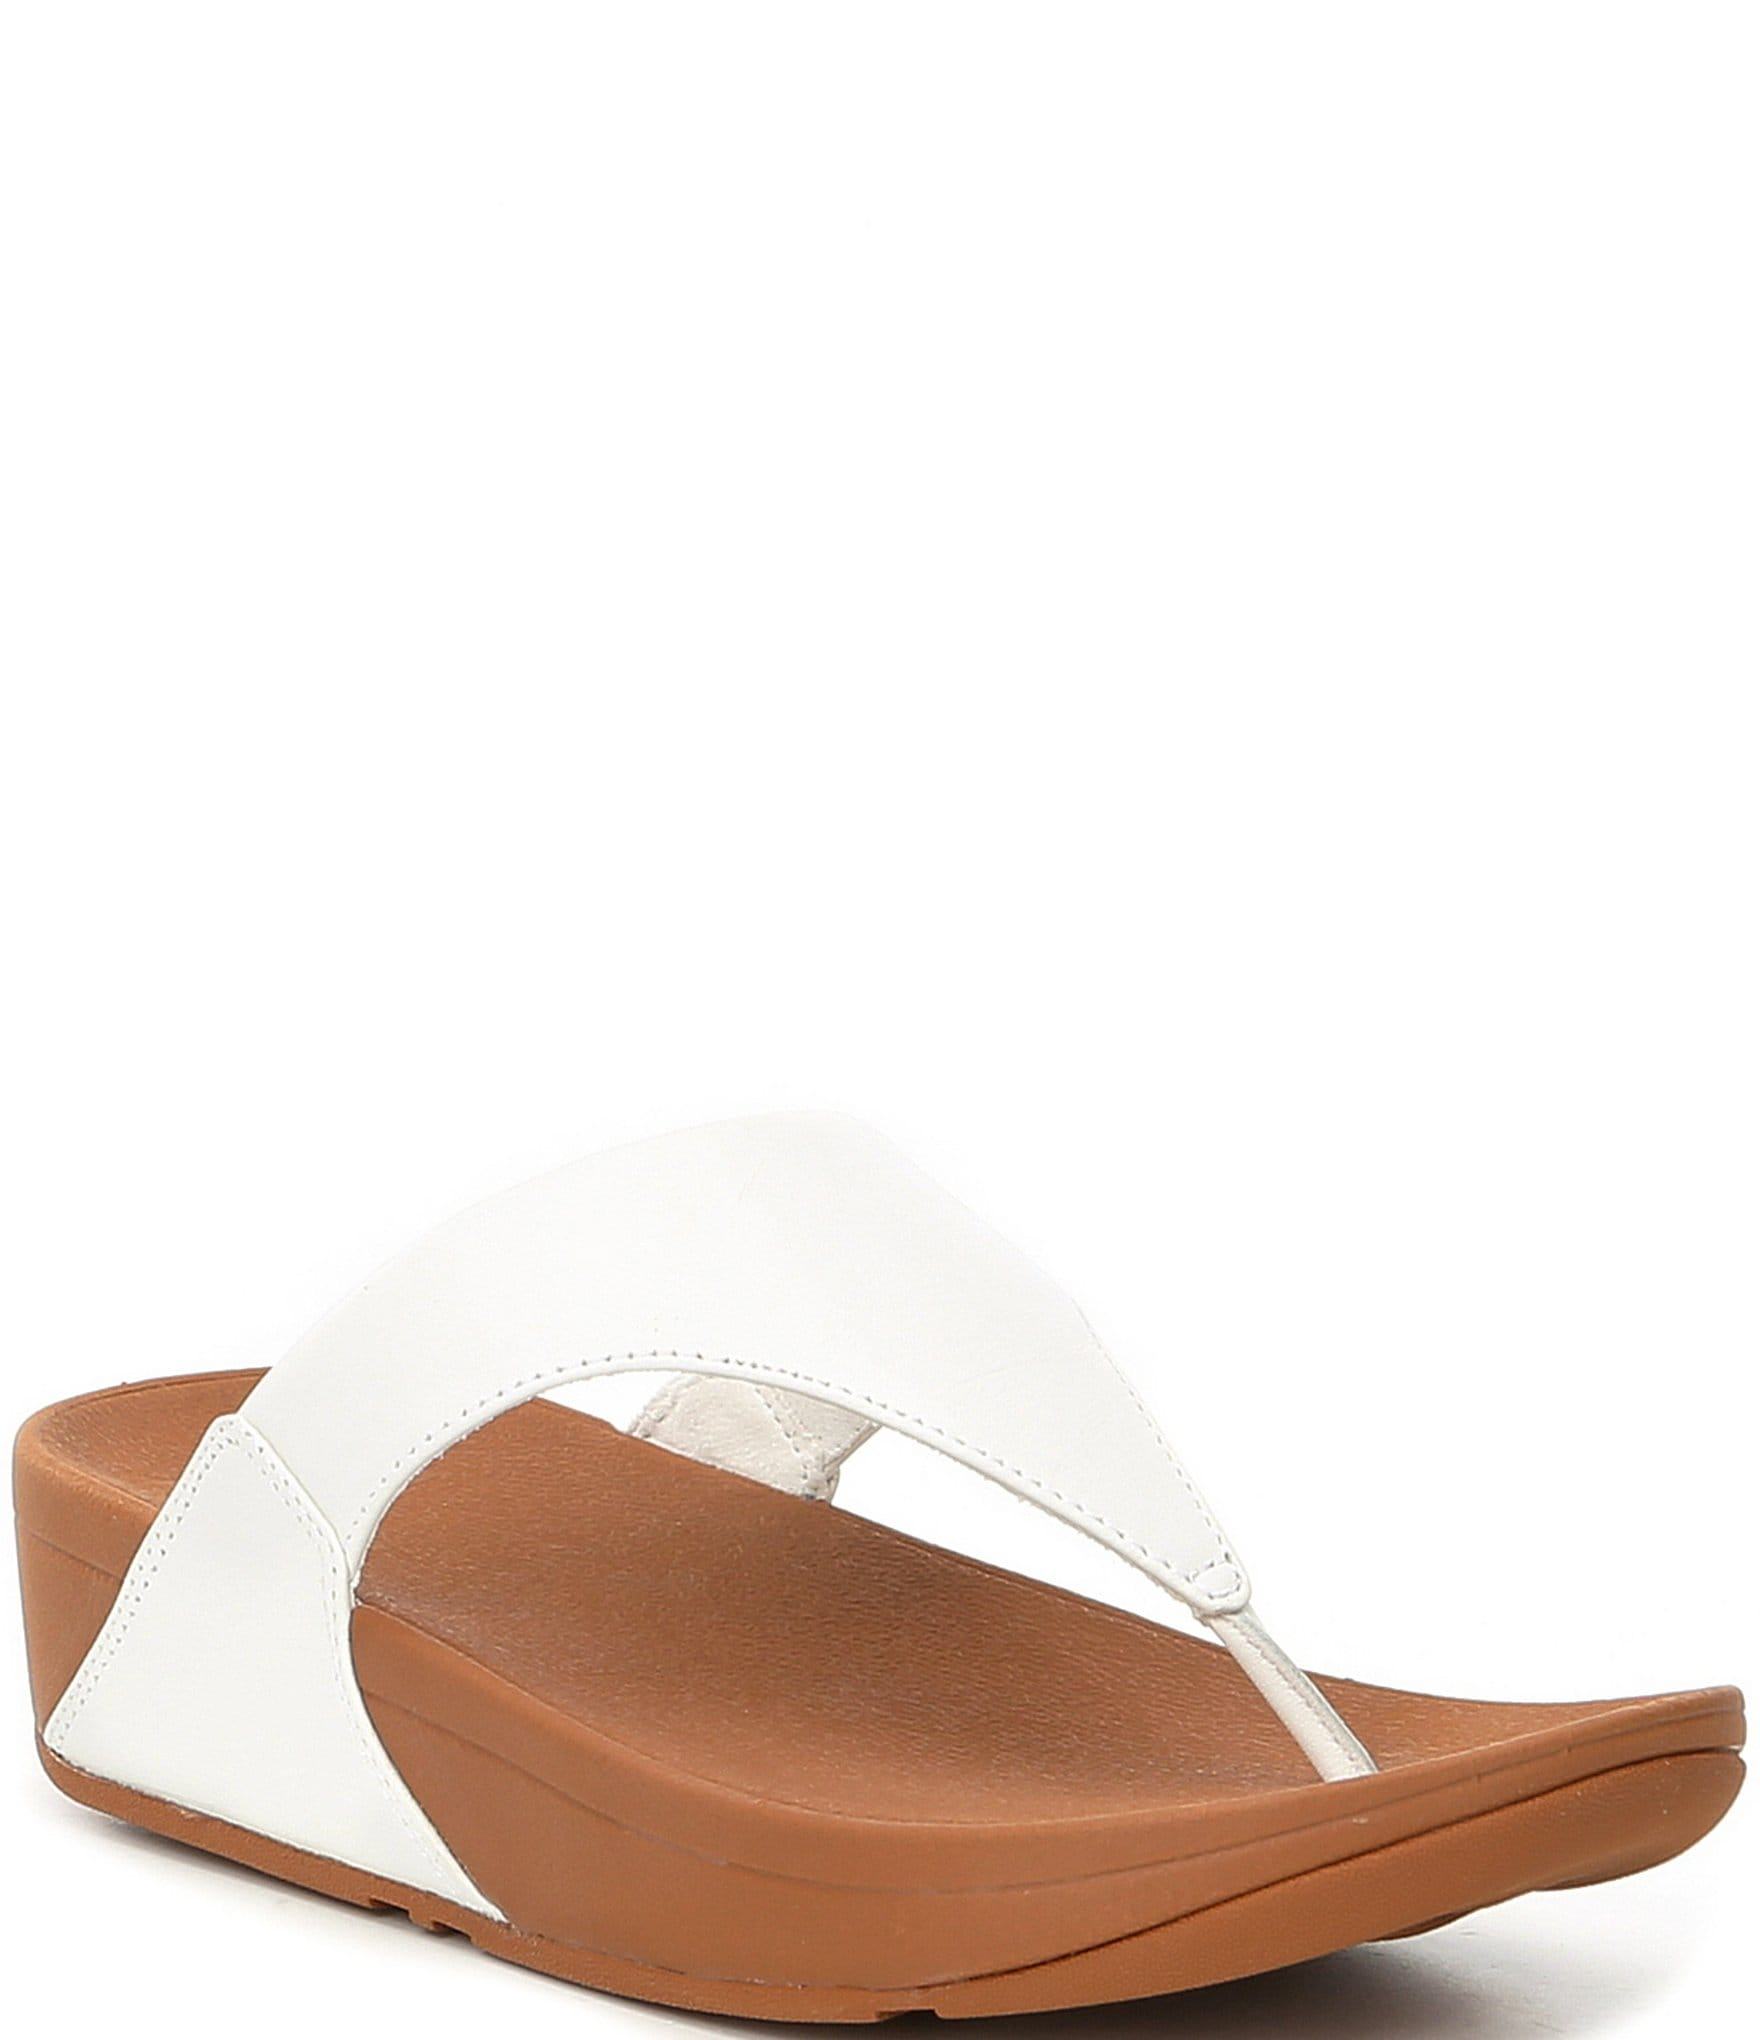 Sandals Thong Leather Lulu Soft Fitflop ZXukPi